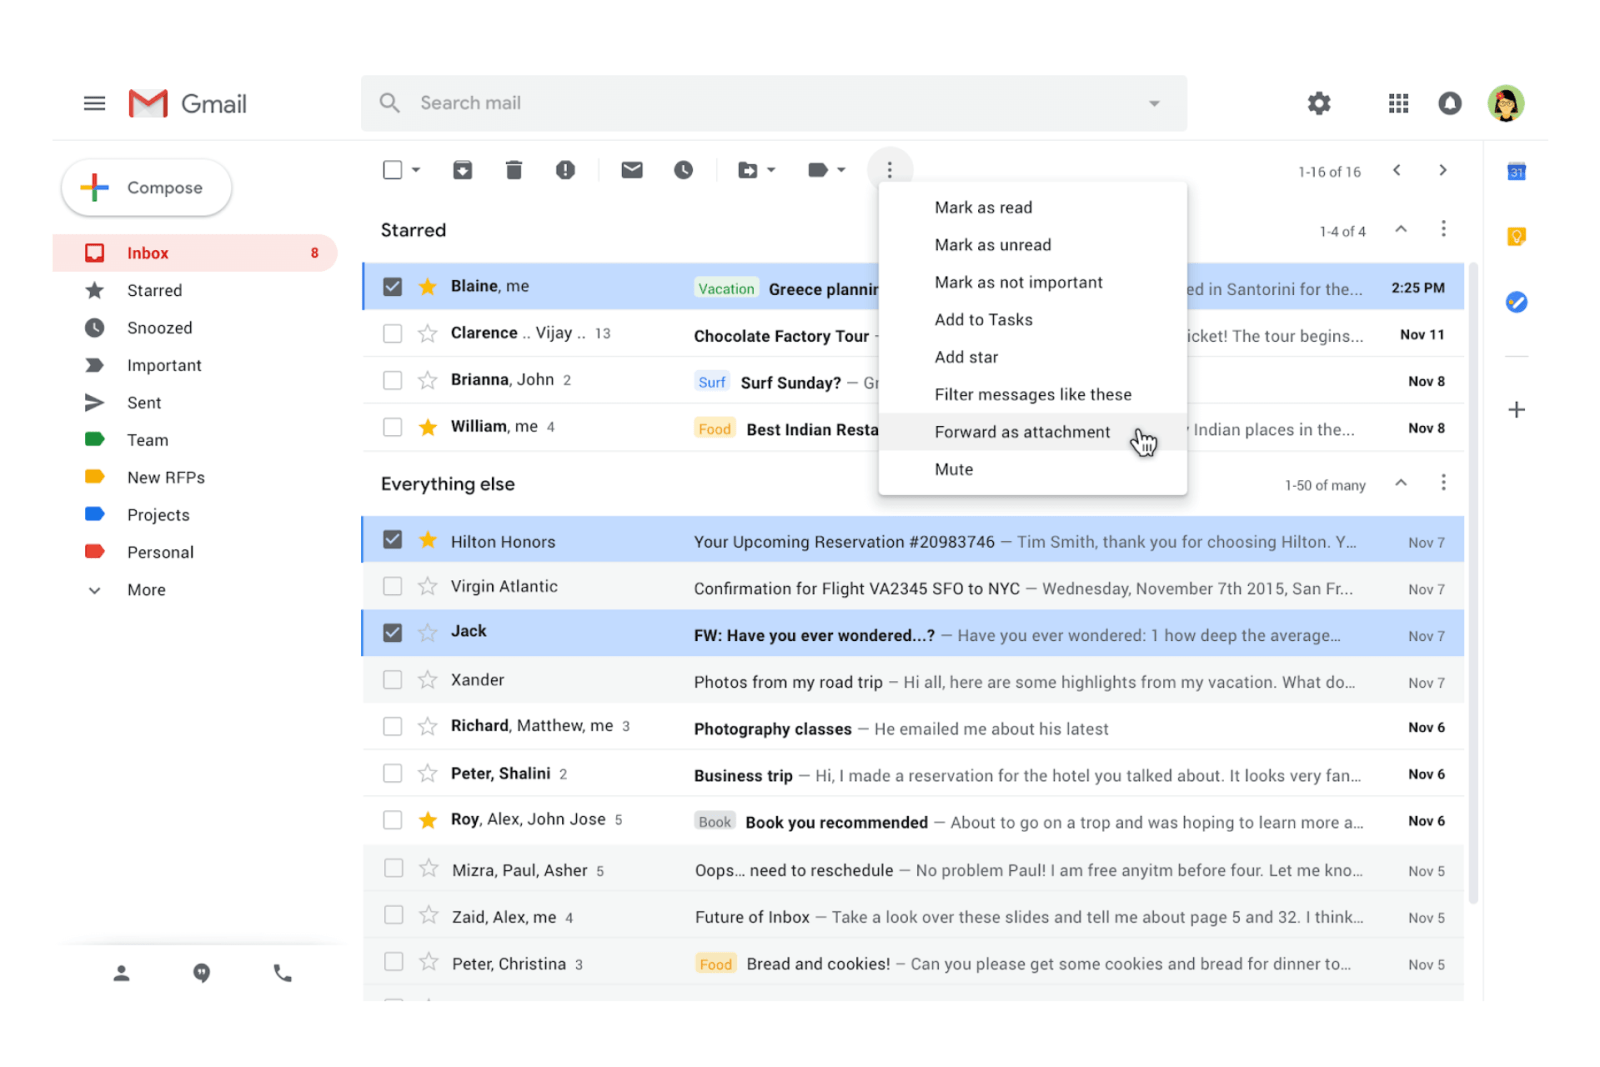 Gmail lets you send emails as an attachments